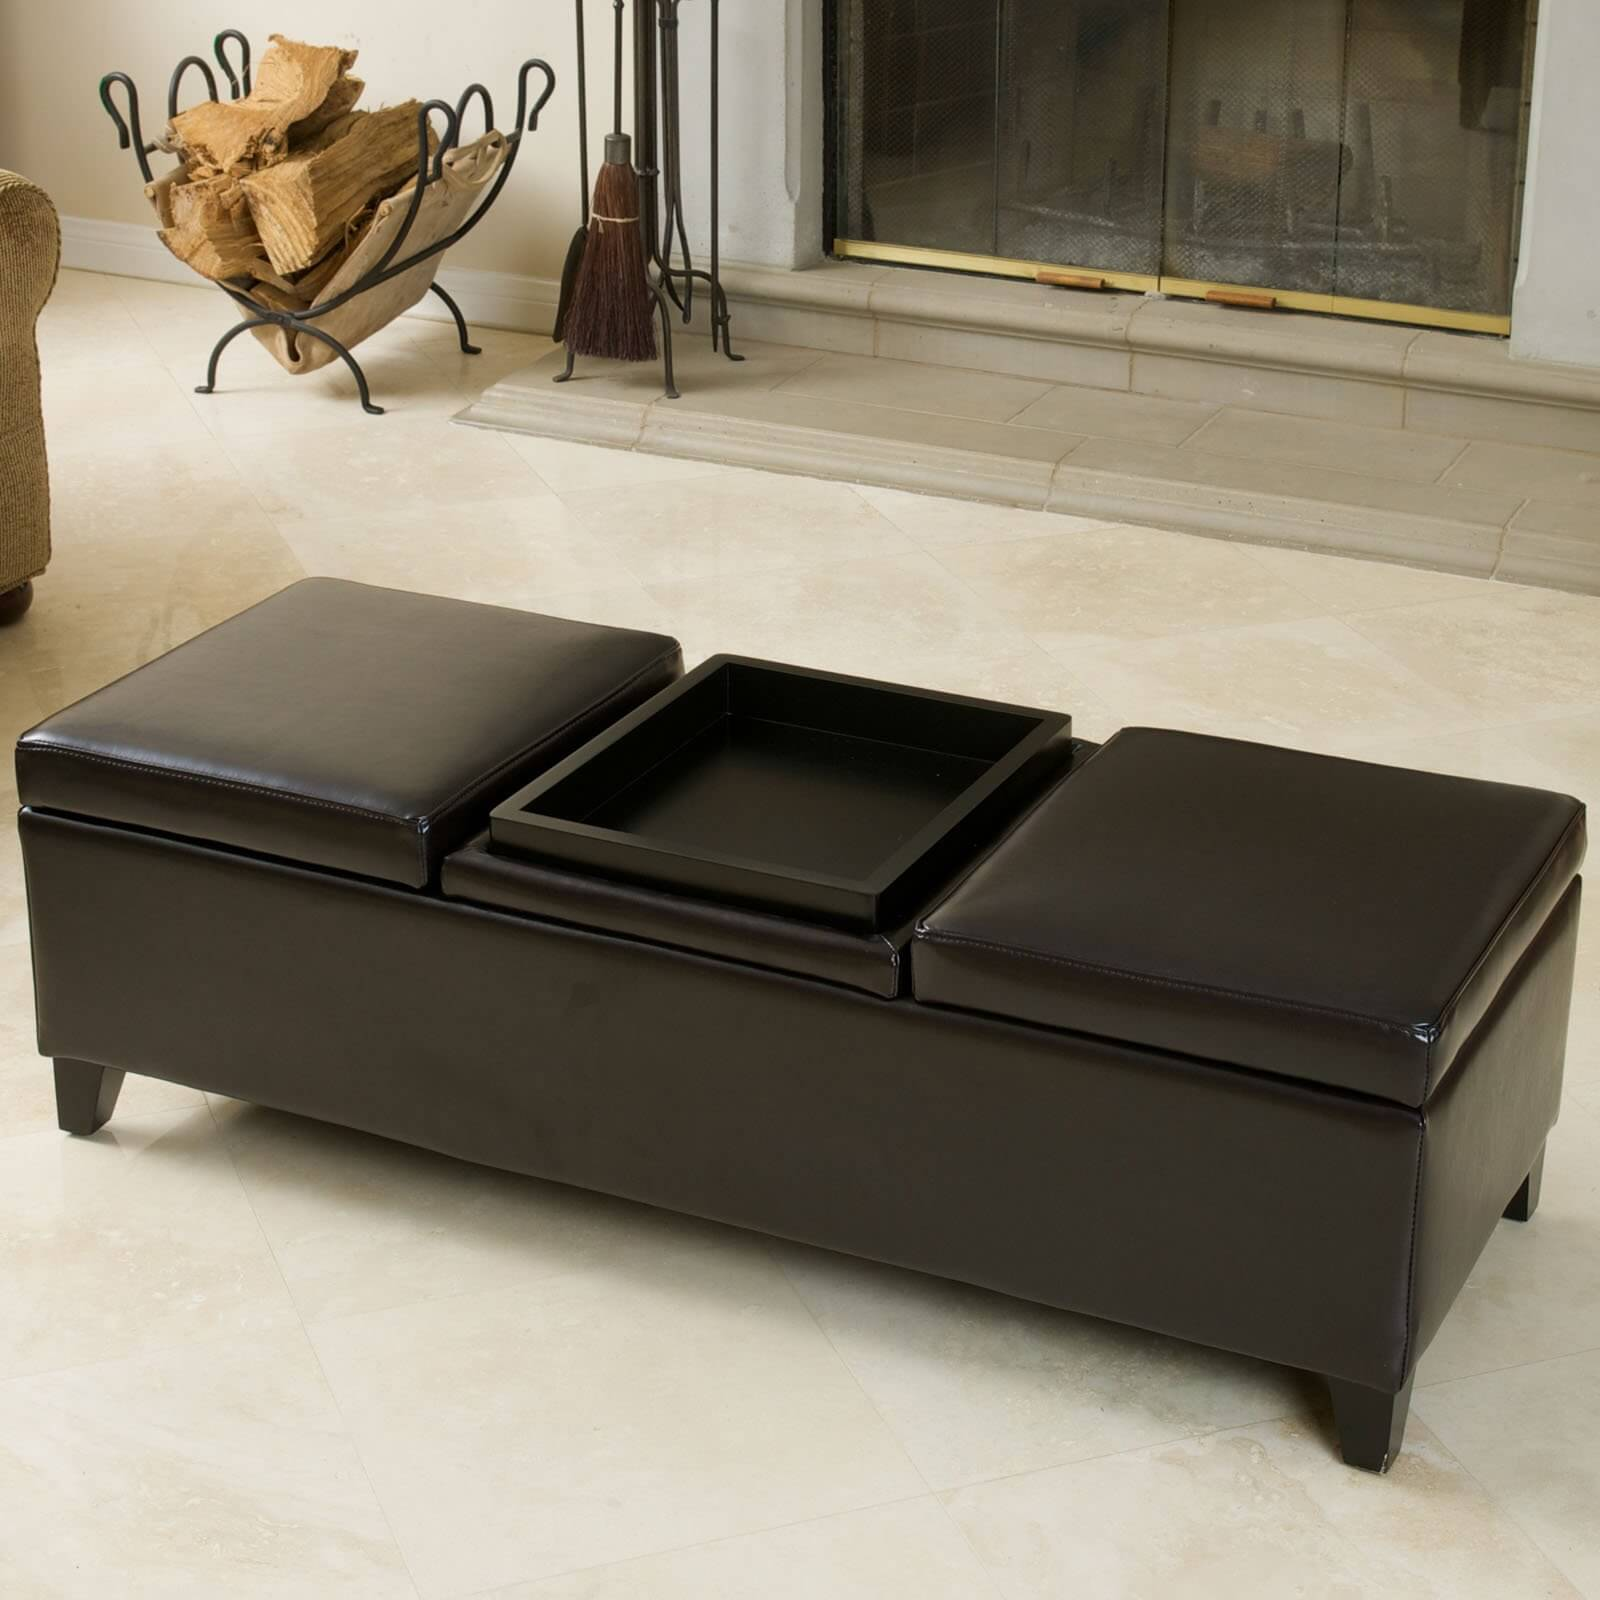 36 top brown leather ottoman coffee tables this triple topped bench ottoman features flippable center cushion for tray table with storage geotapseo Choice Image